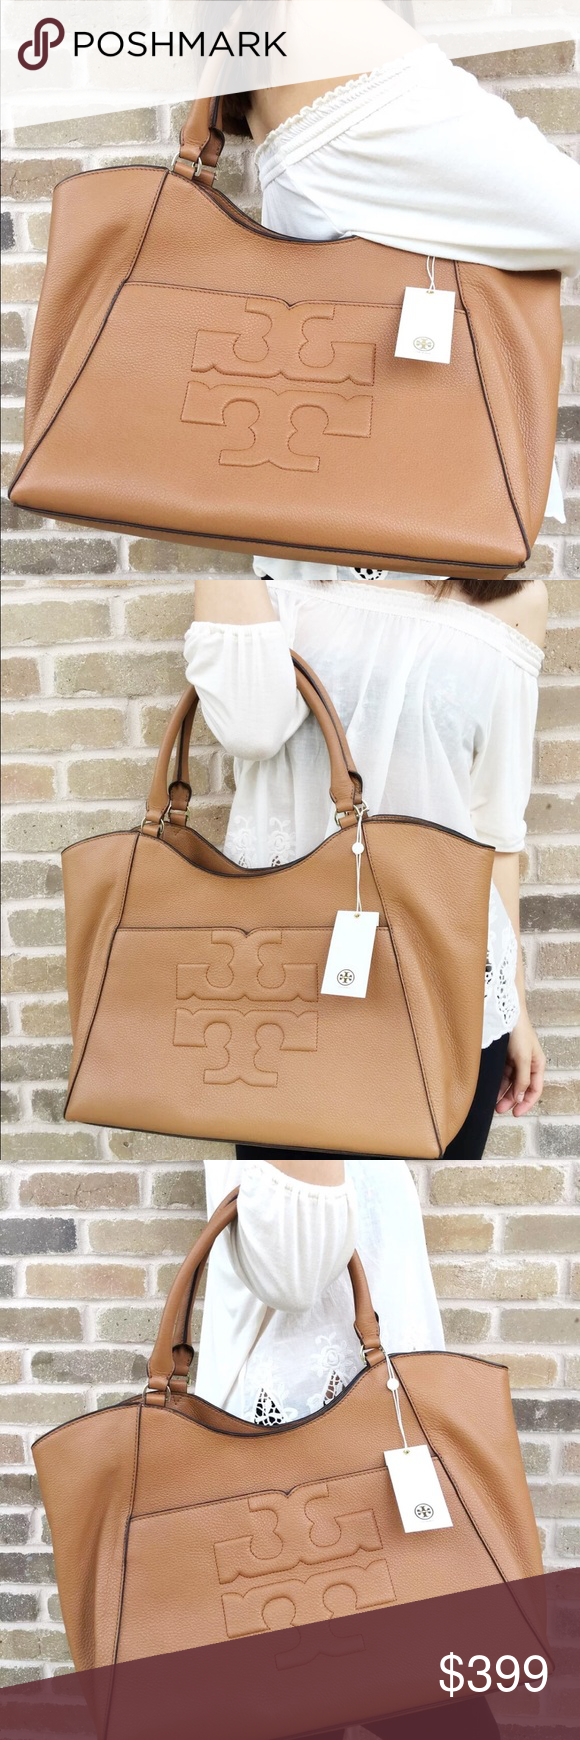 Tory Burch Bombe Large east West Tote bark tan Boutique  db1f5afc88ae5